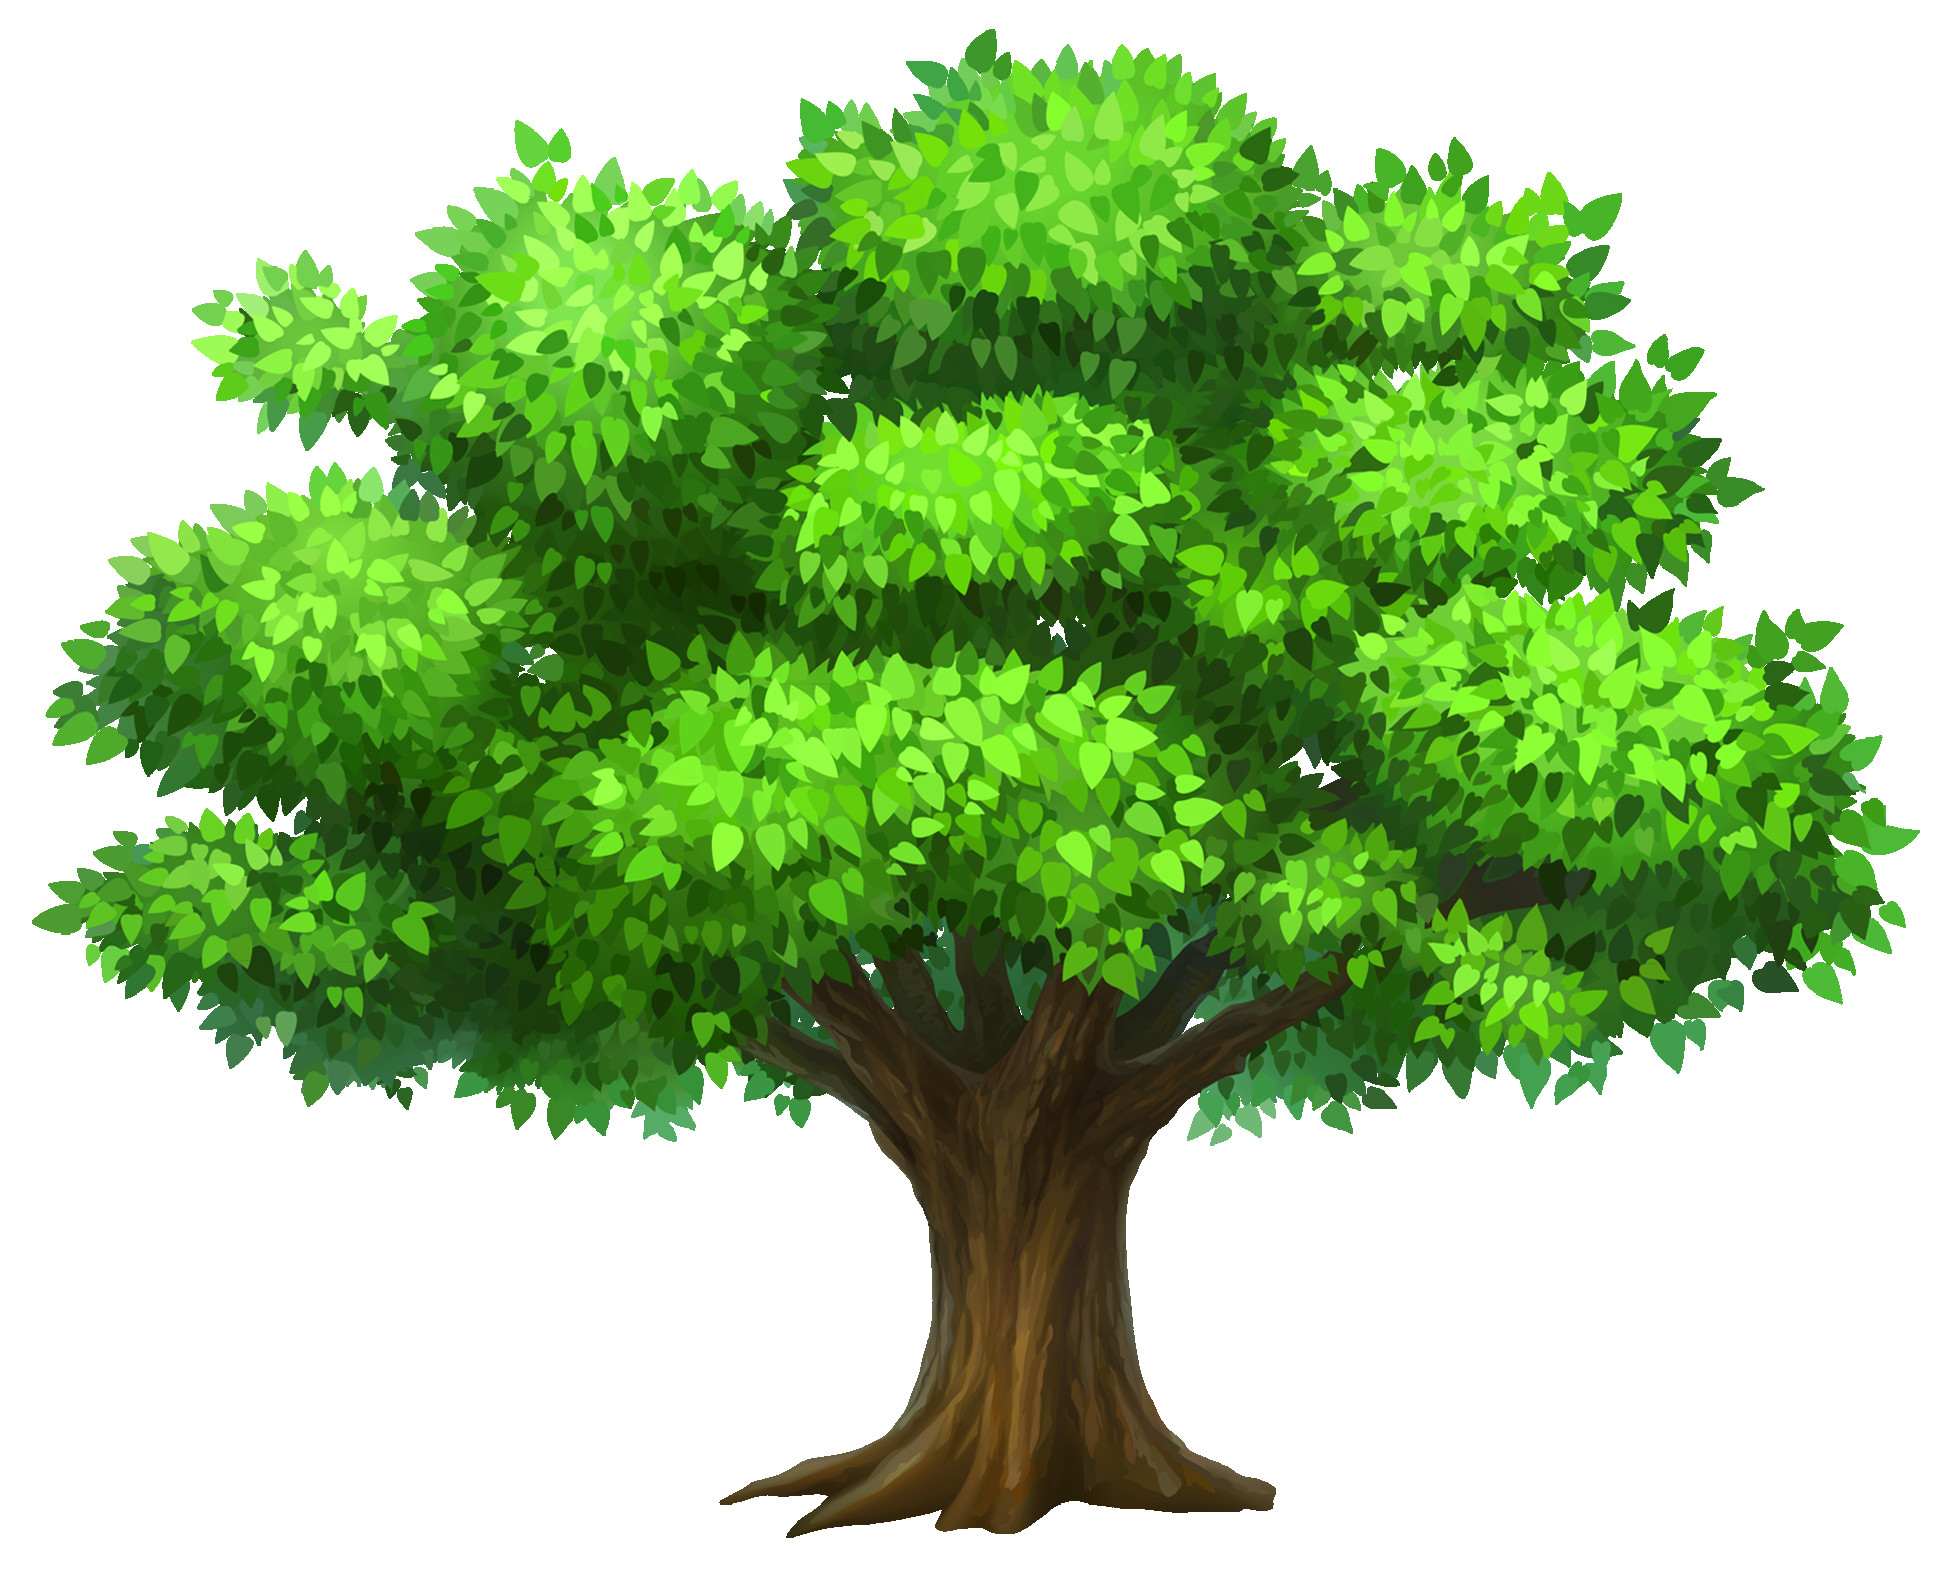 Trees clipart. Oack tree png picture